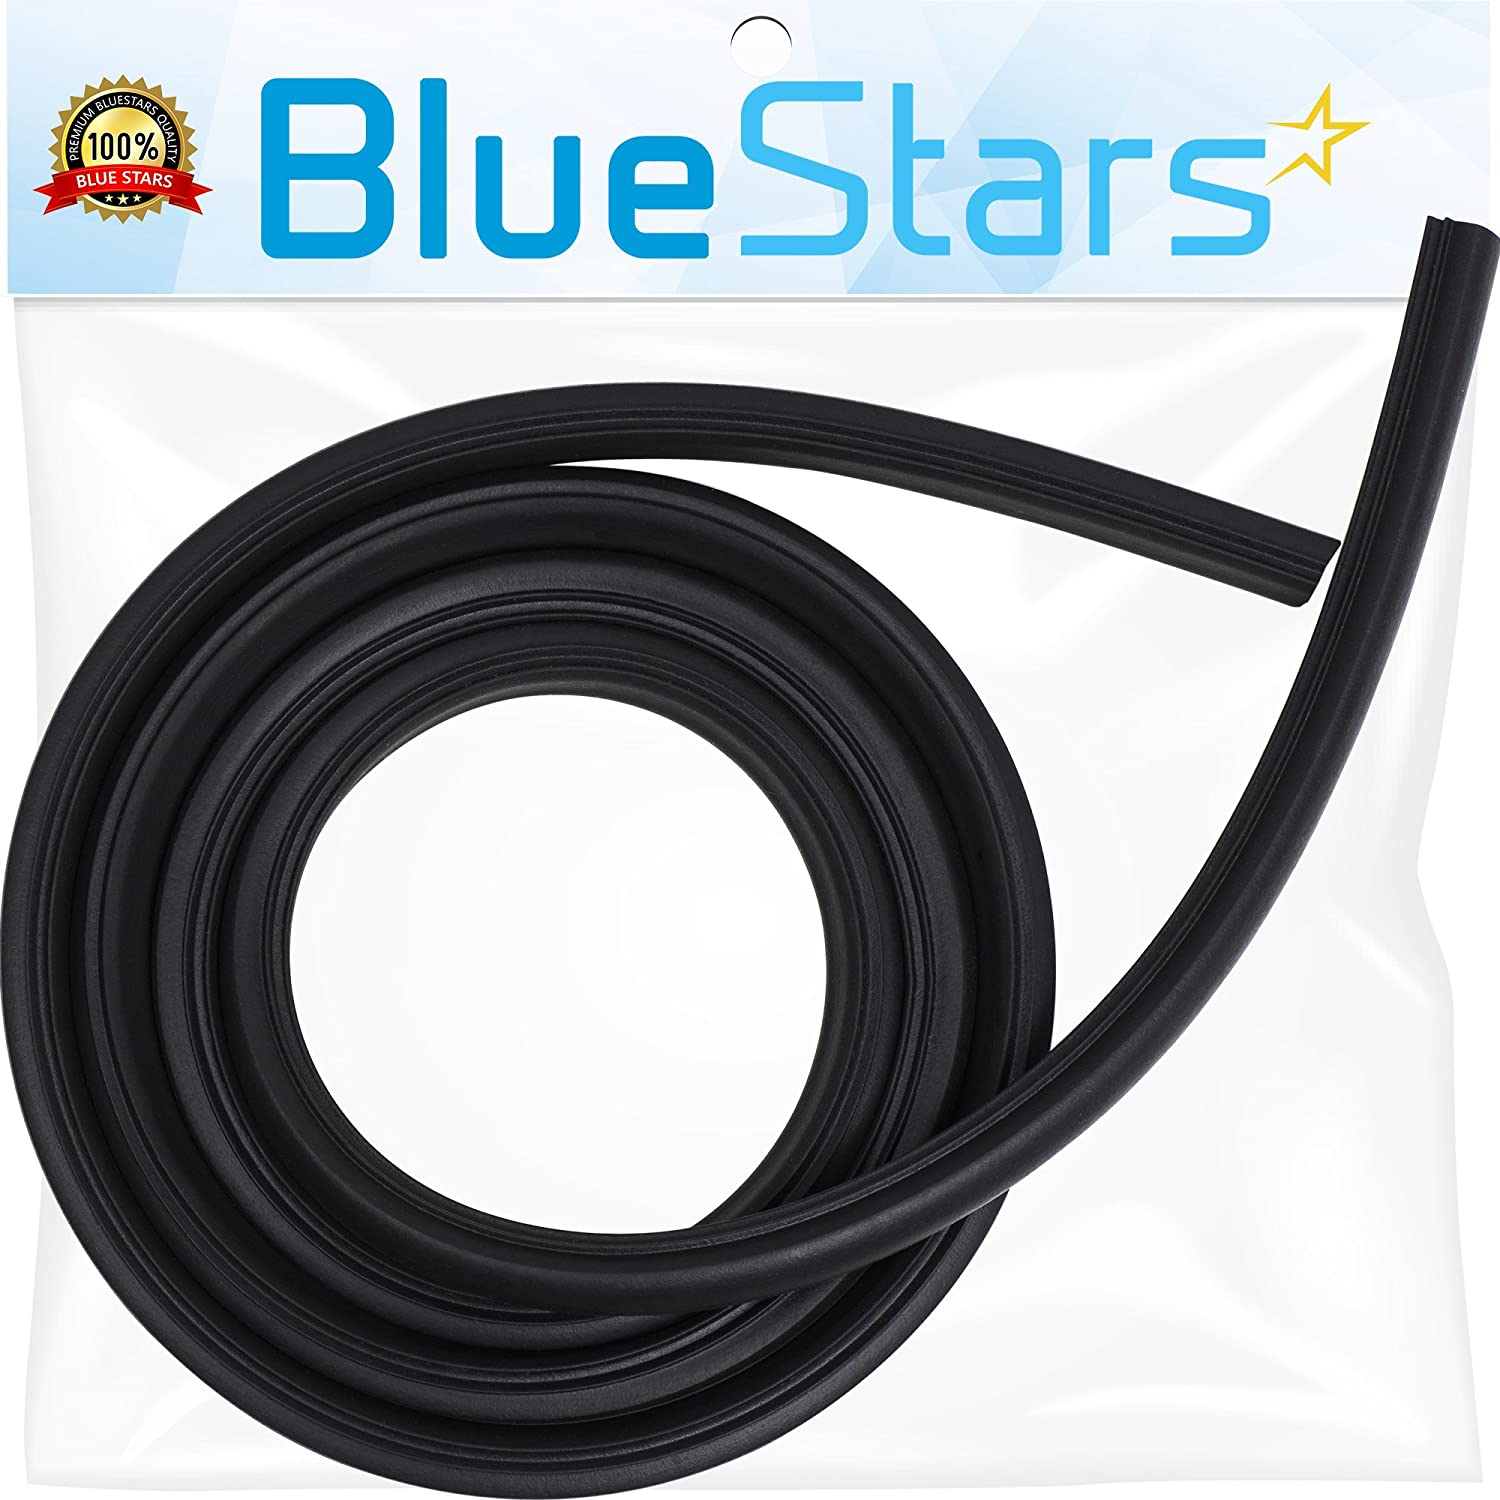 Ultra Durable W10509257 Dishwasher Door Gasket Replacement Part by Blue Stars – Exact Fit For Whirlpool & Kenmore Dishwashers – Replaces W10082795 3368994 WPW10509257 3376927